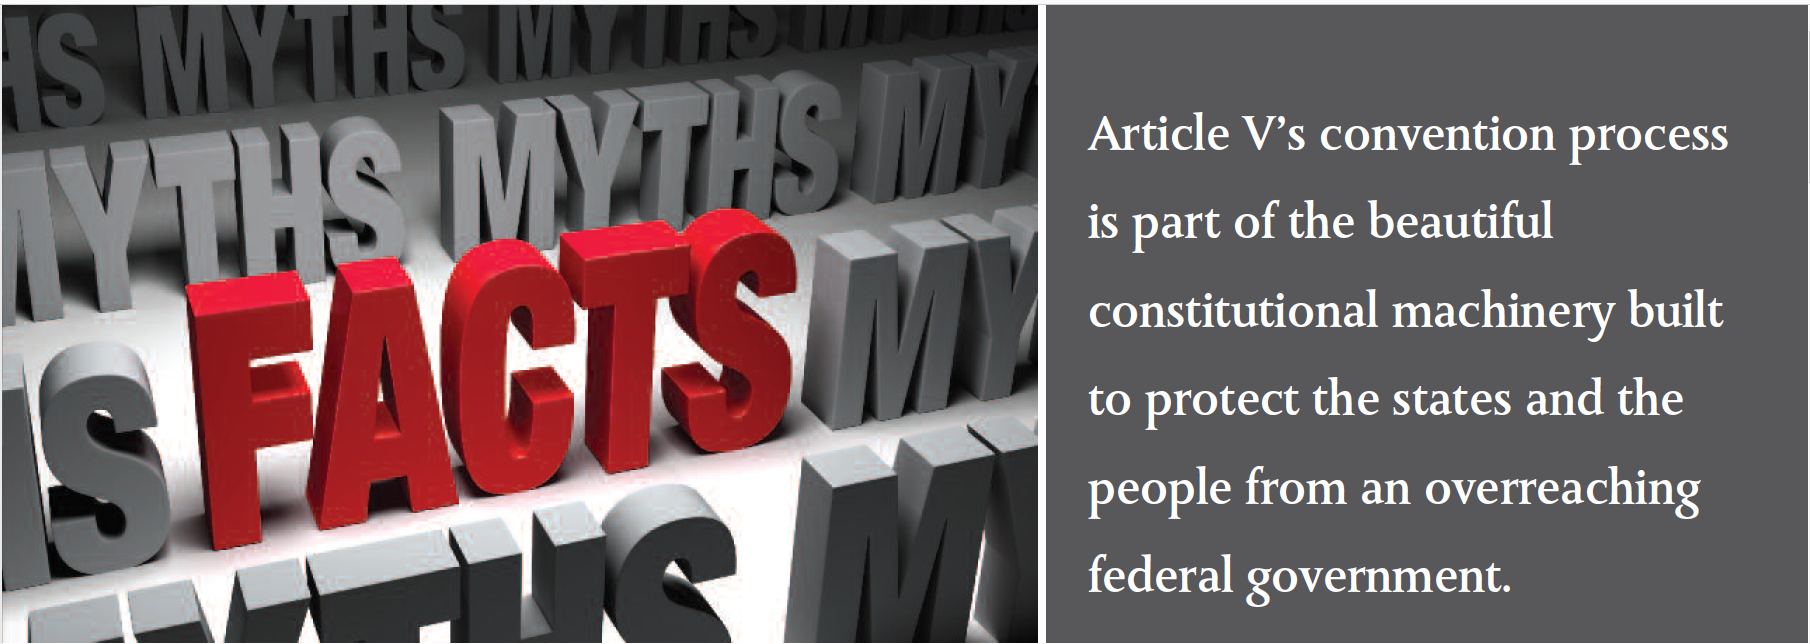 documents:cosproject:surge:article-13-fivemythsbanner.png